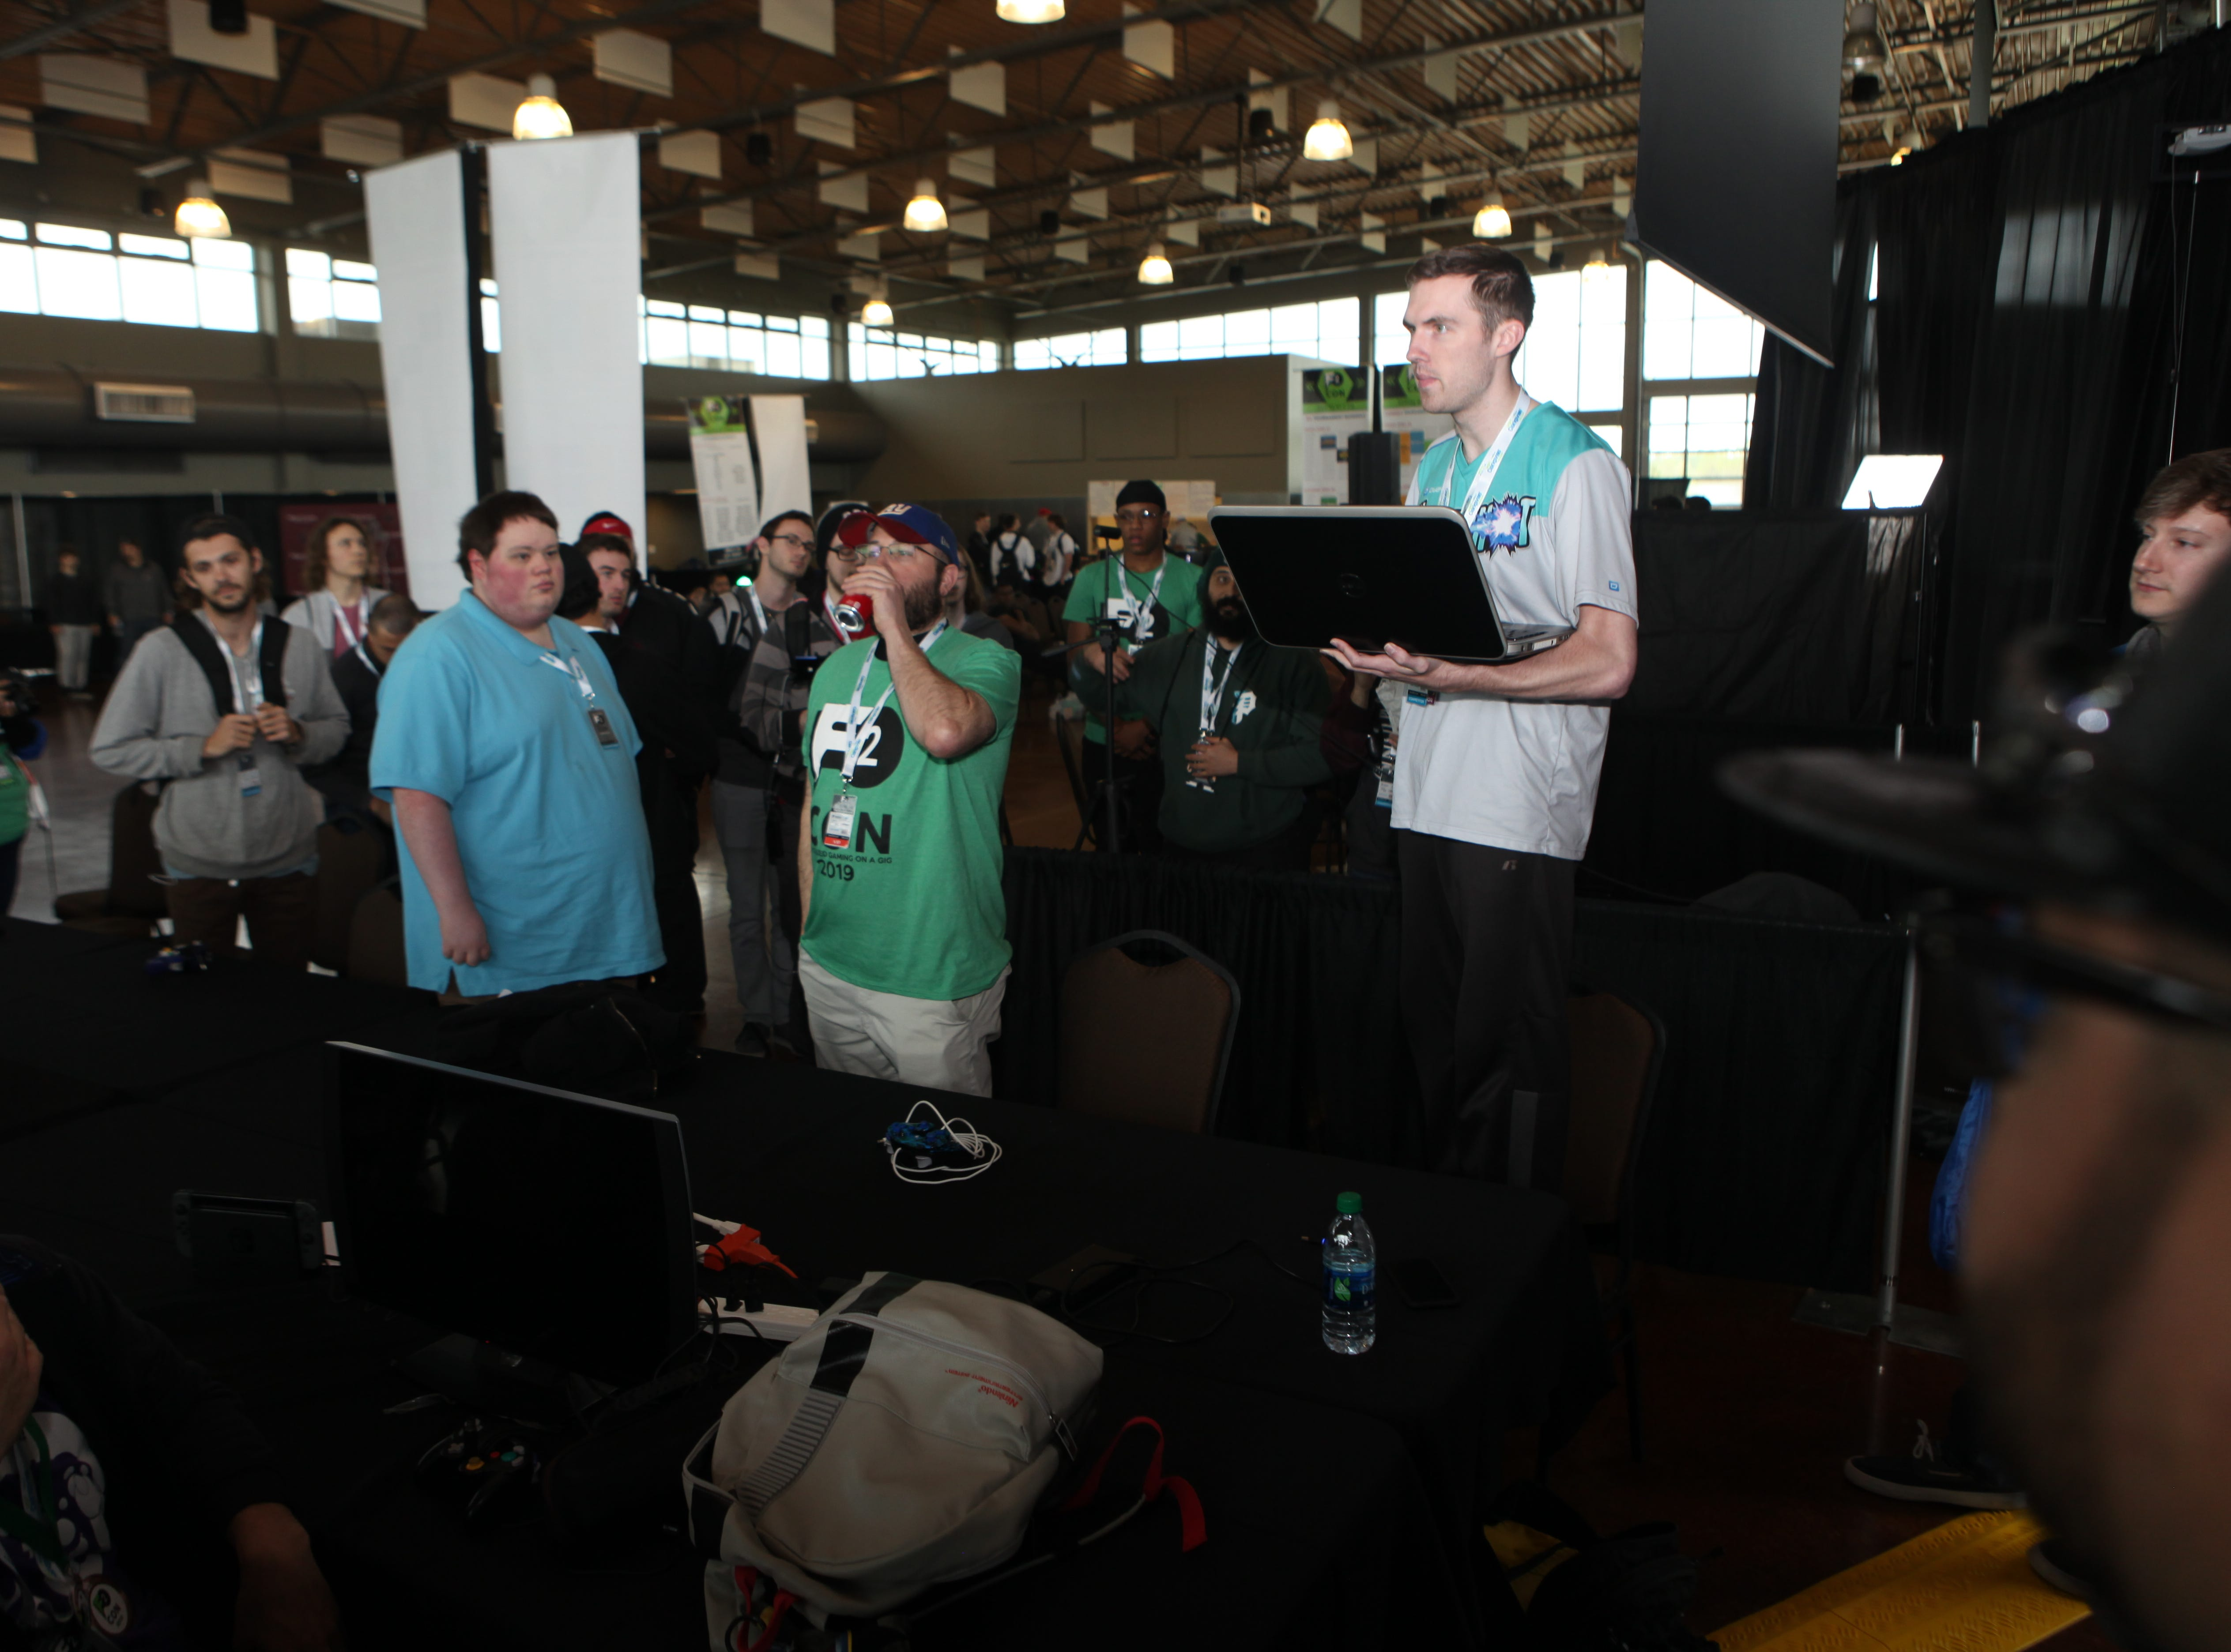 Phelan Ward, tournament organizer for the Smash Brothers Competition, at the second annual F2 Con Gaming Tournament on Saturday, April 20, 2019.